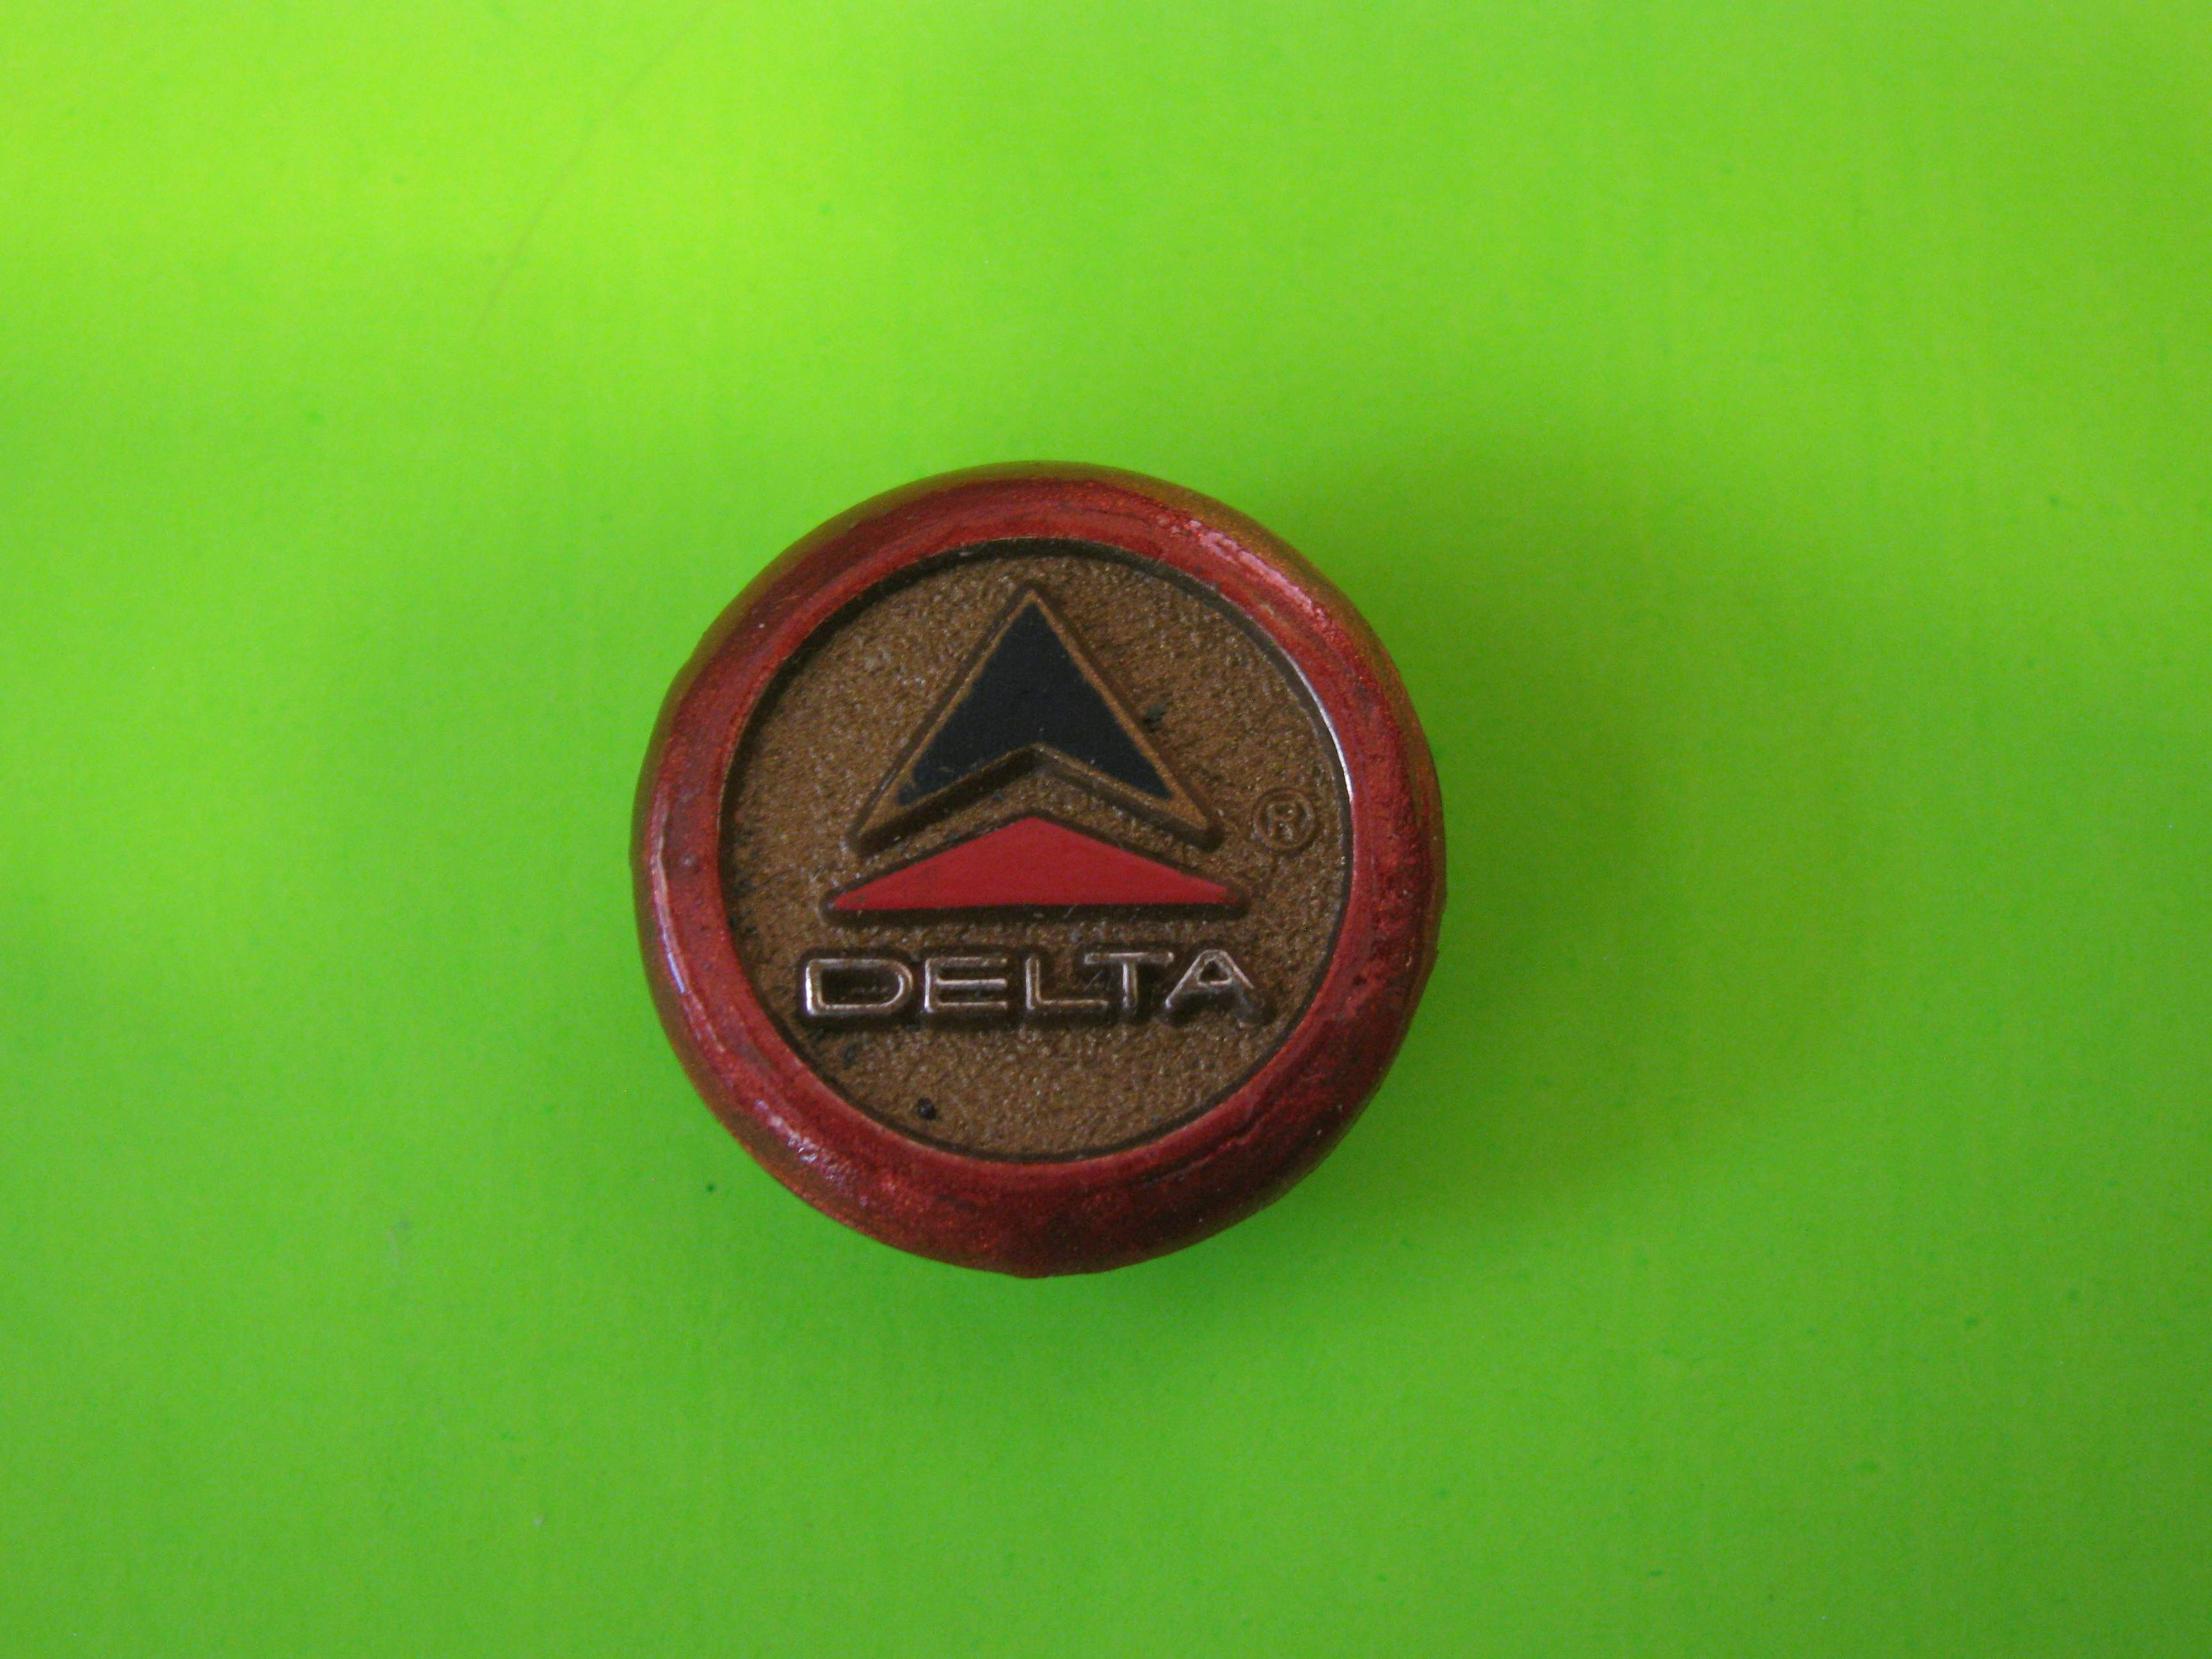 Vintage DELTA AIR LINES LOGO on Metal Button with Metal Loop Shank